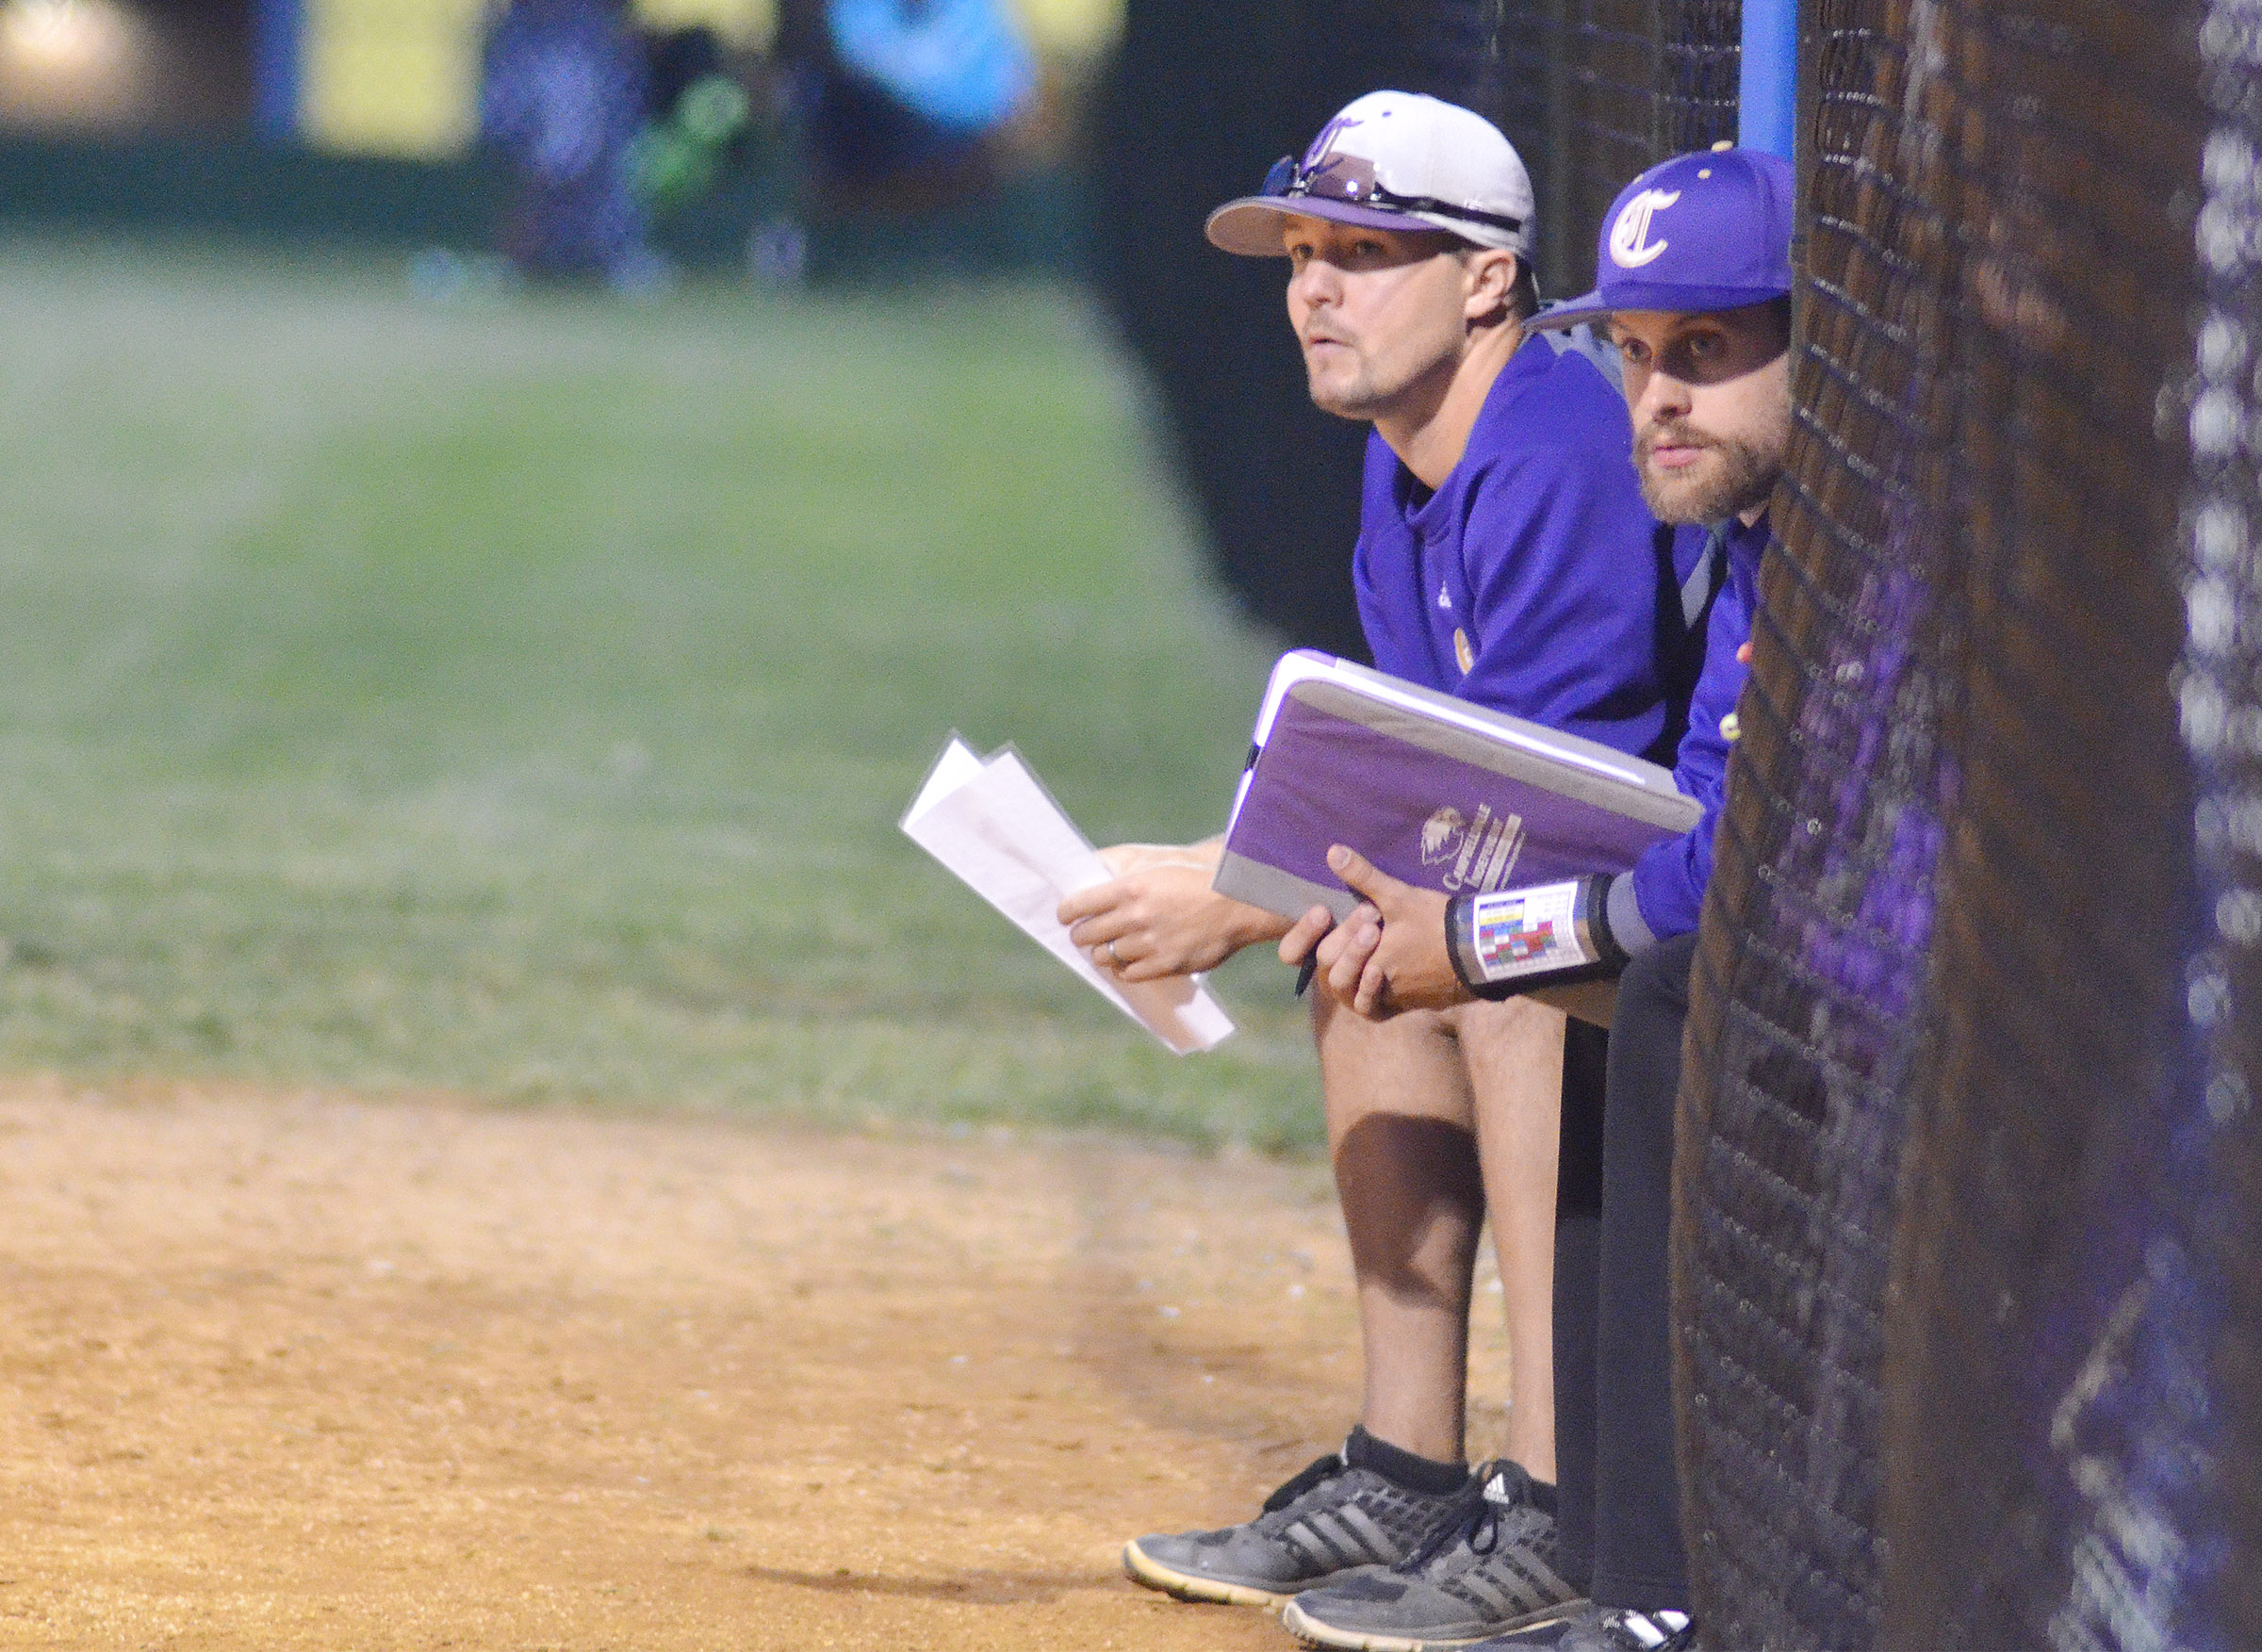 CHS head softball coach Weston Jones, at left, and assistant coach Matt Schmuck watch their players.